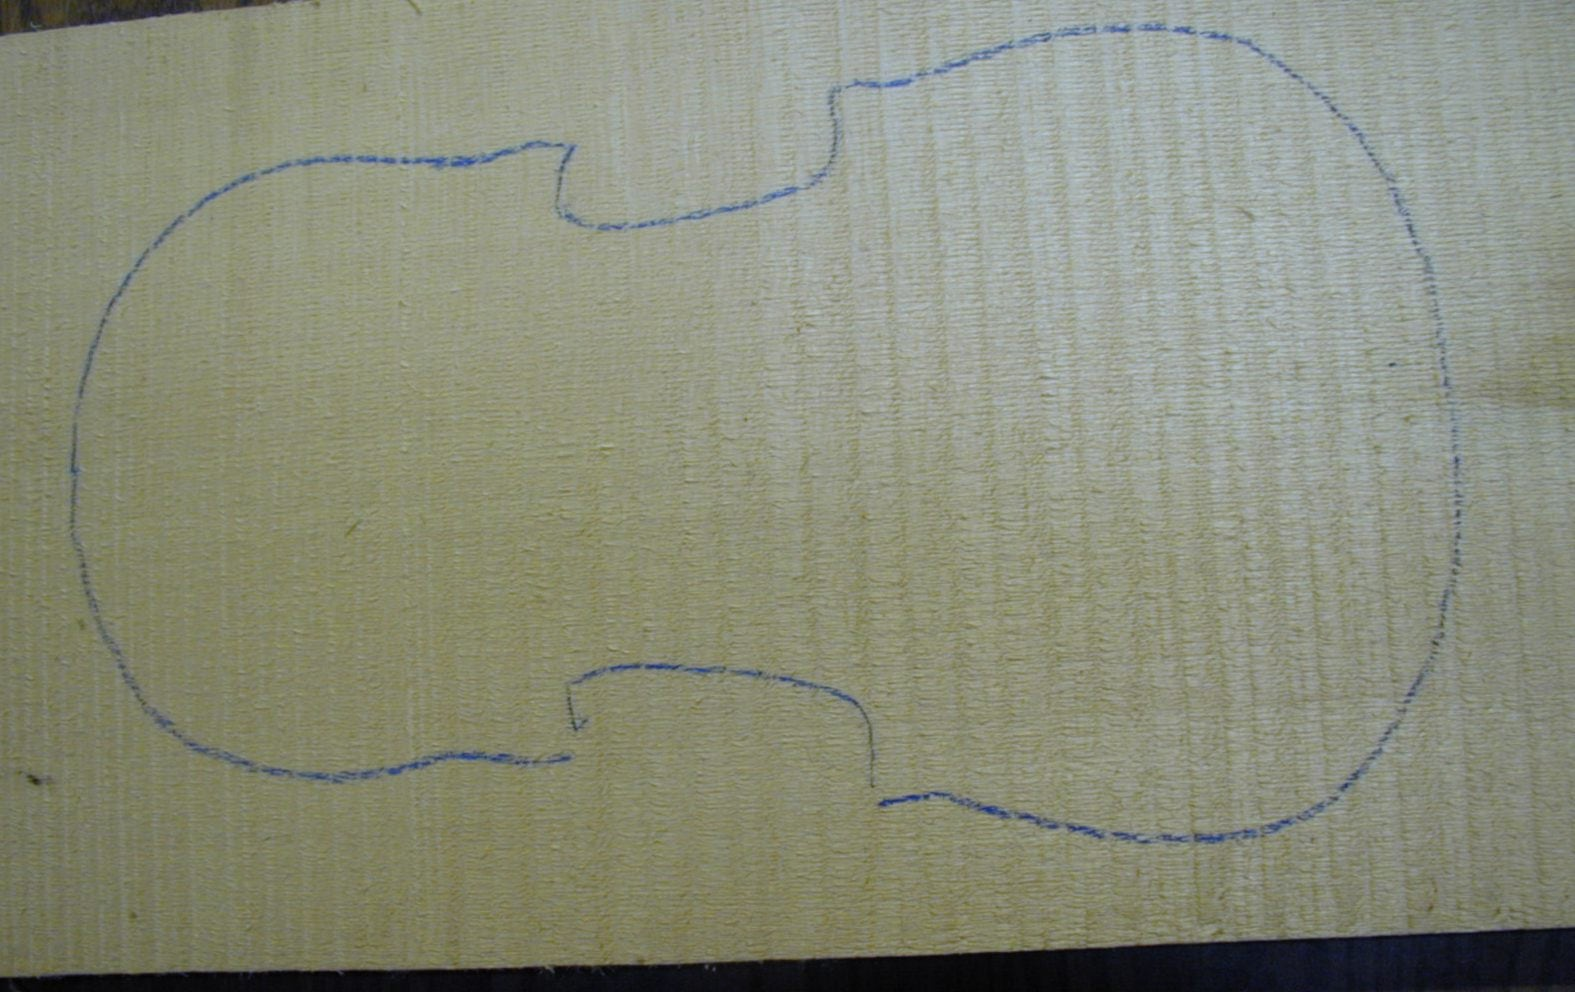 3-A one piece violin tonewood